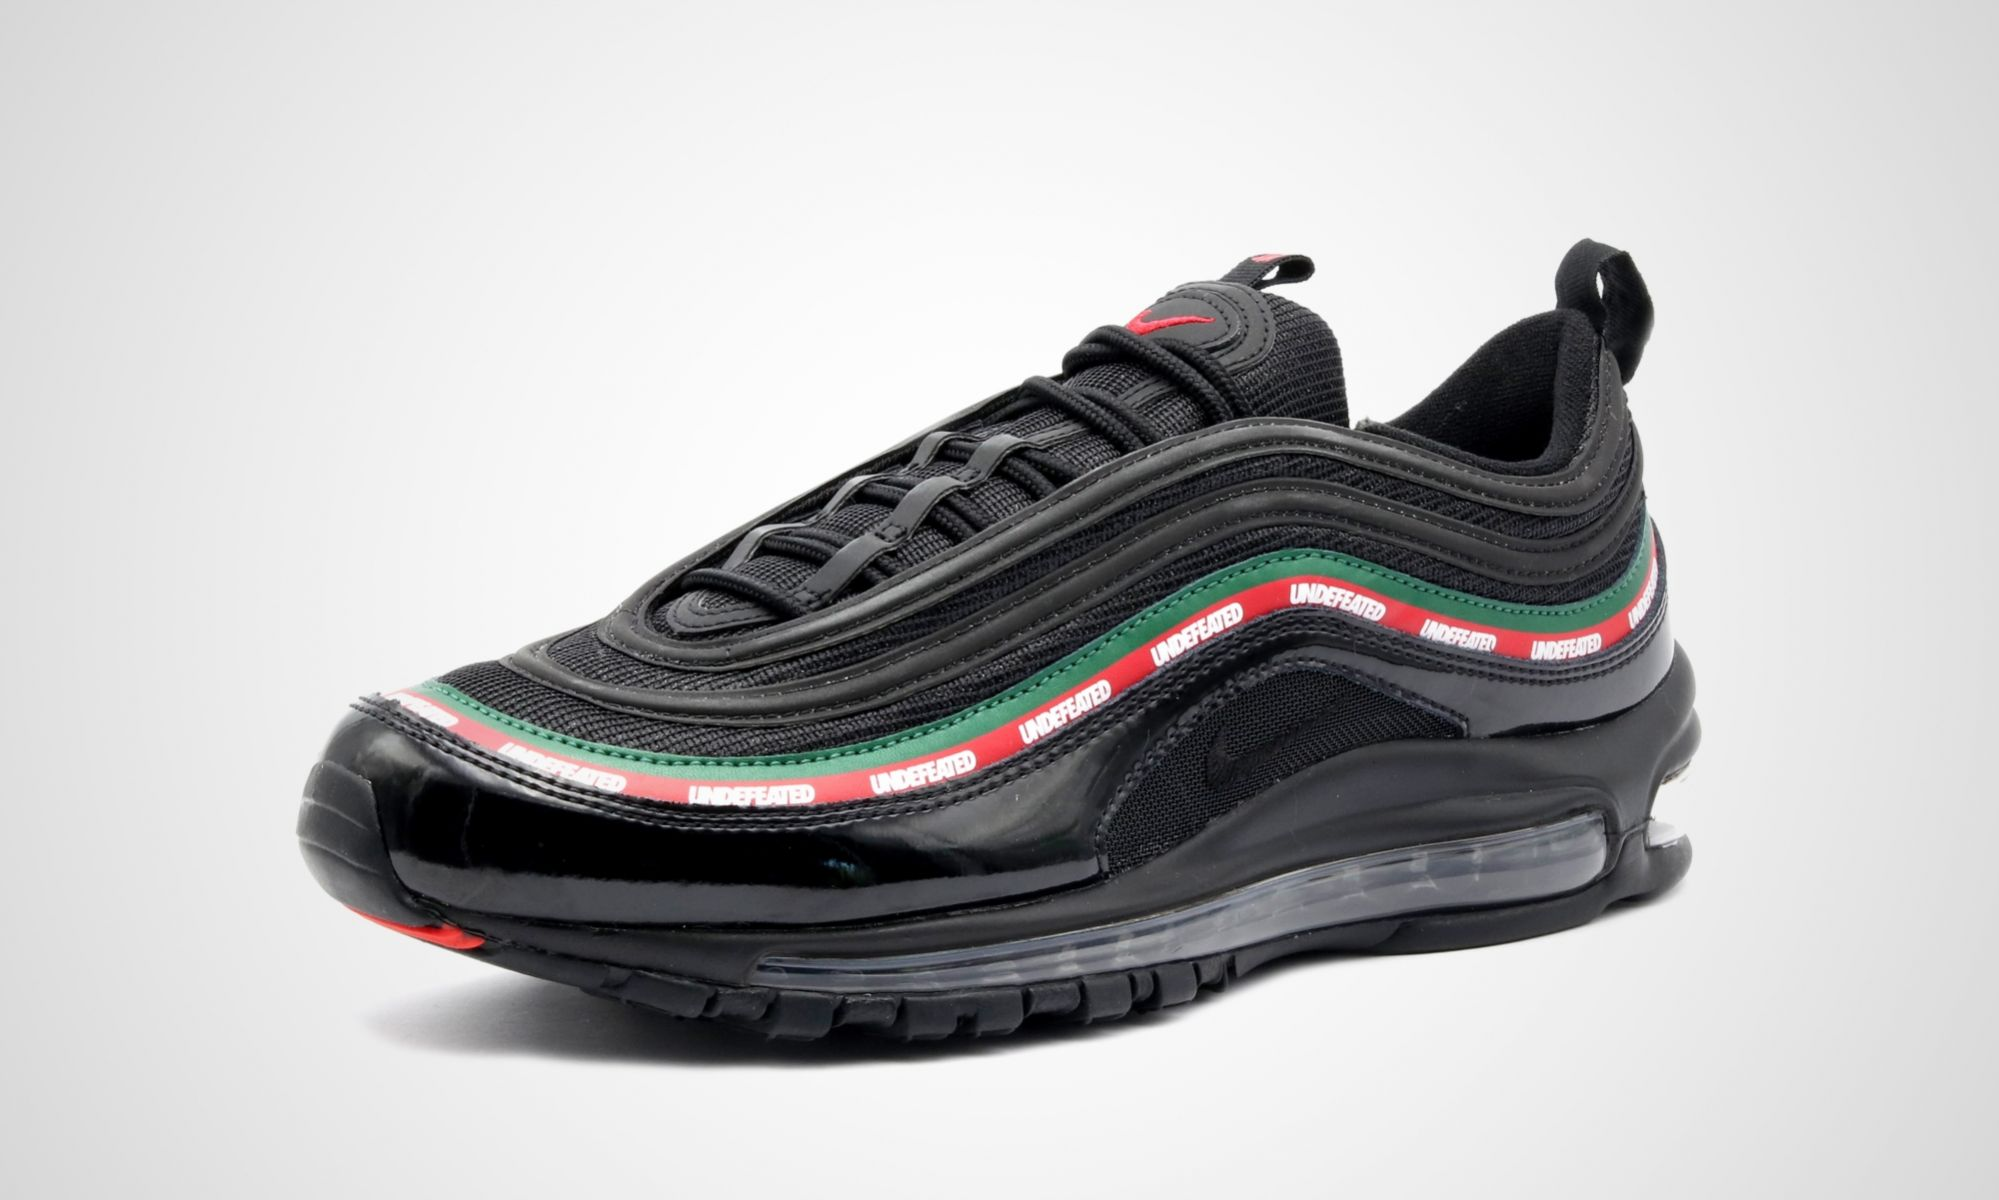 Undefeated x Nike Air Max 97 | Dead Stock Sneakerblog